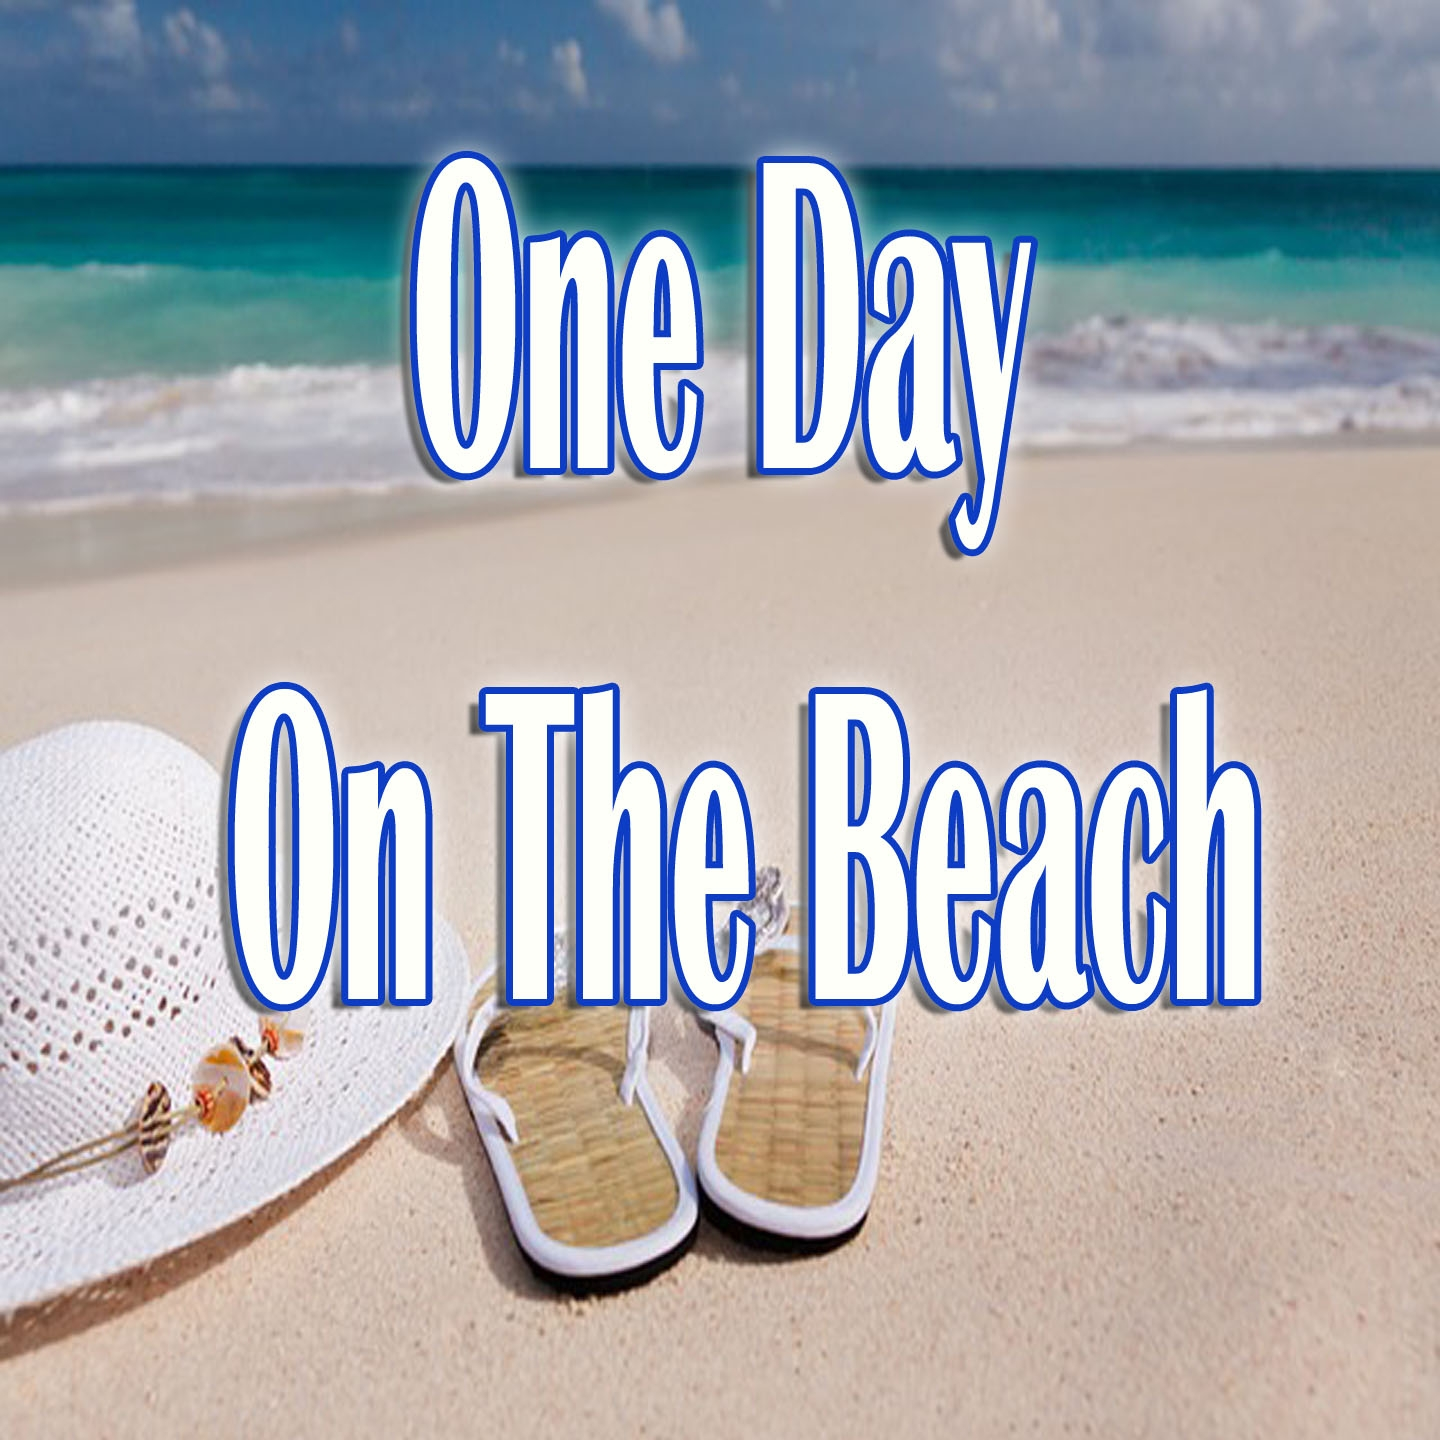 One Day On The Beach